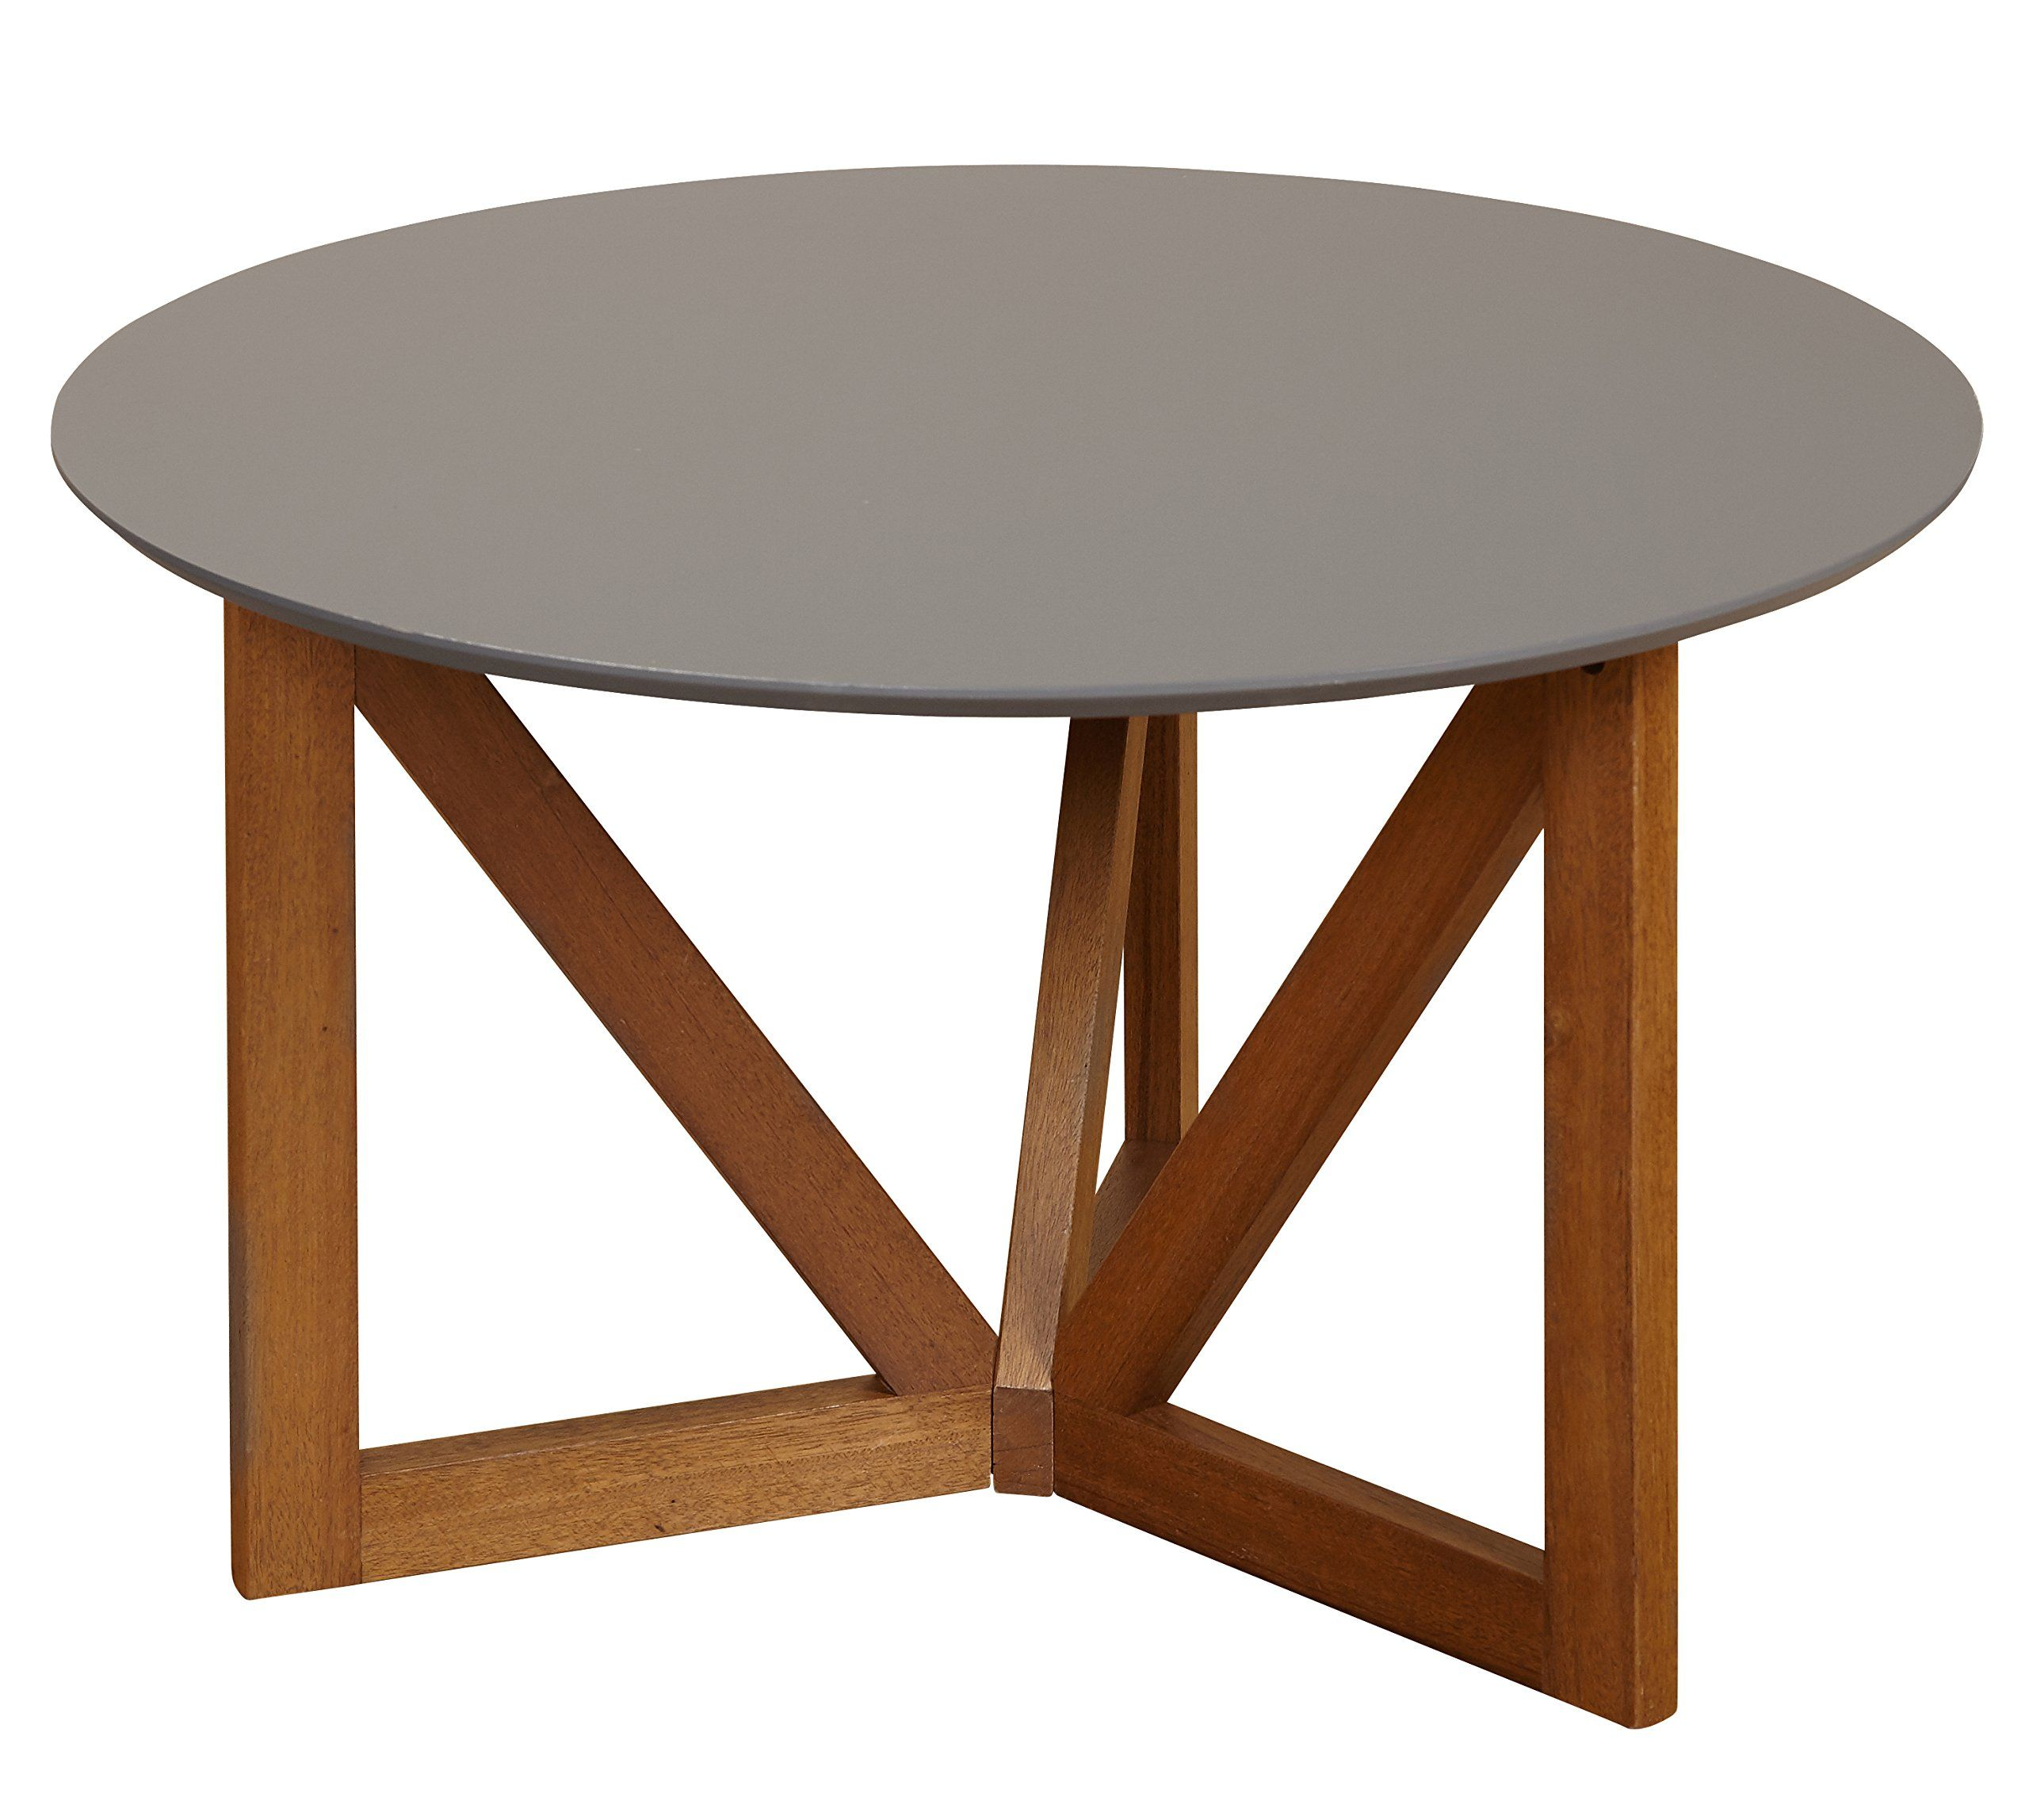 Shaker Coffee Table Natural Hearth Hand With Magnolia In 2021 Round Wood Coffee Table Coffee Table Round Coffee Table [ 2000 x 2000 Pixel ]